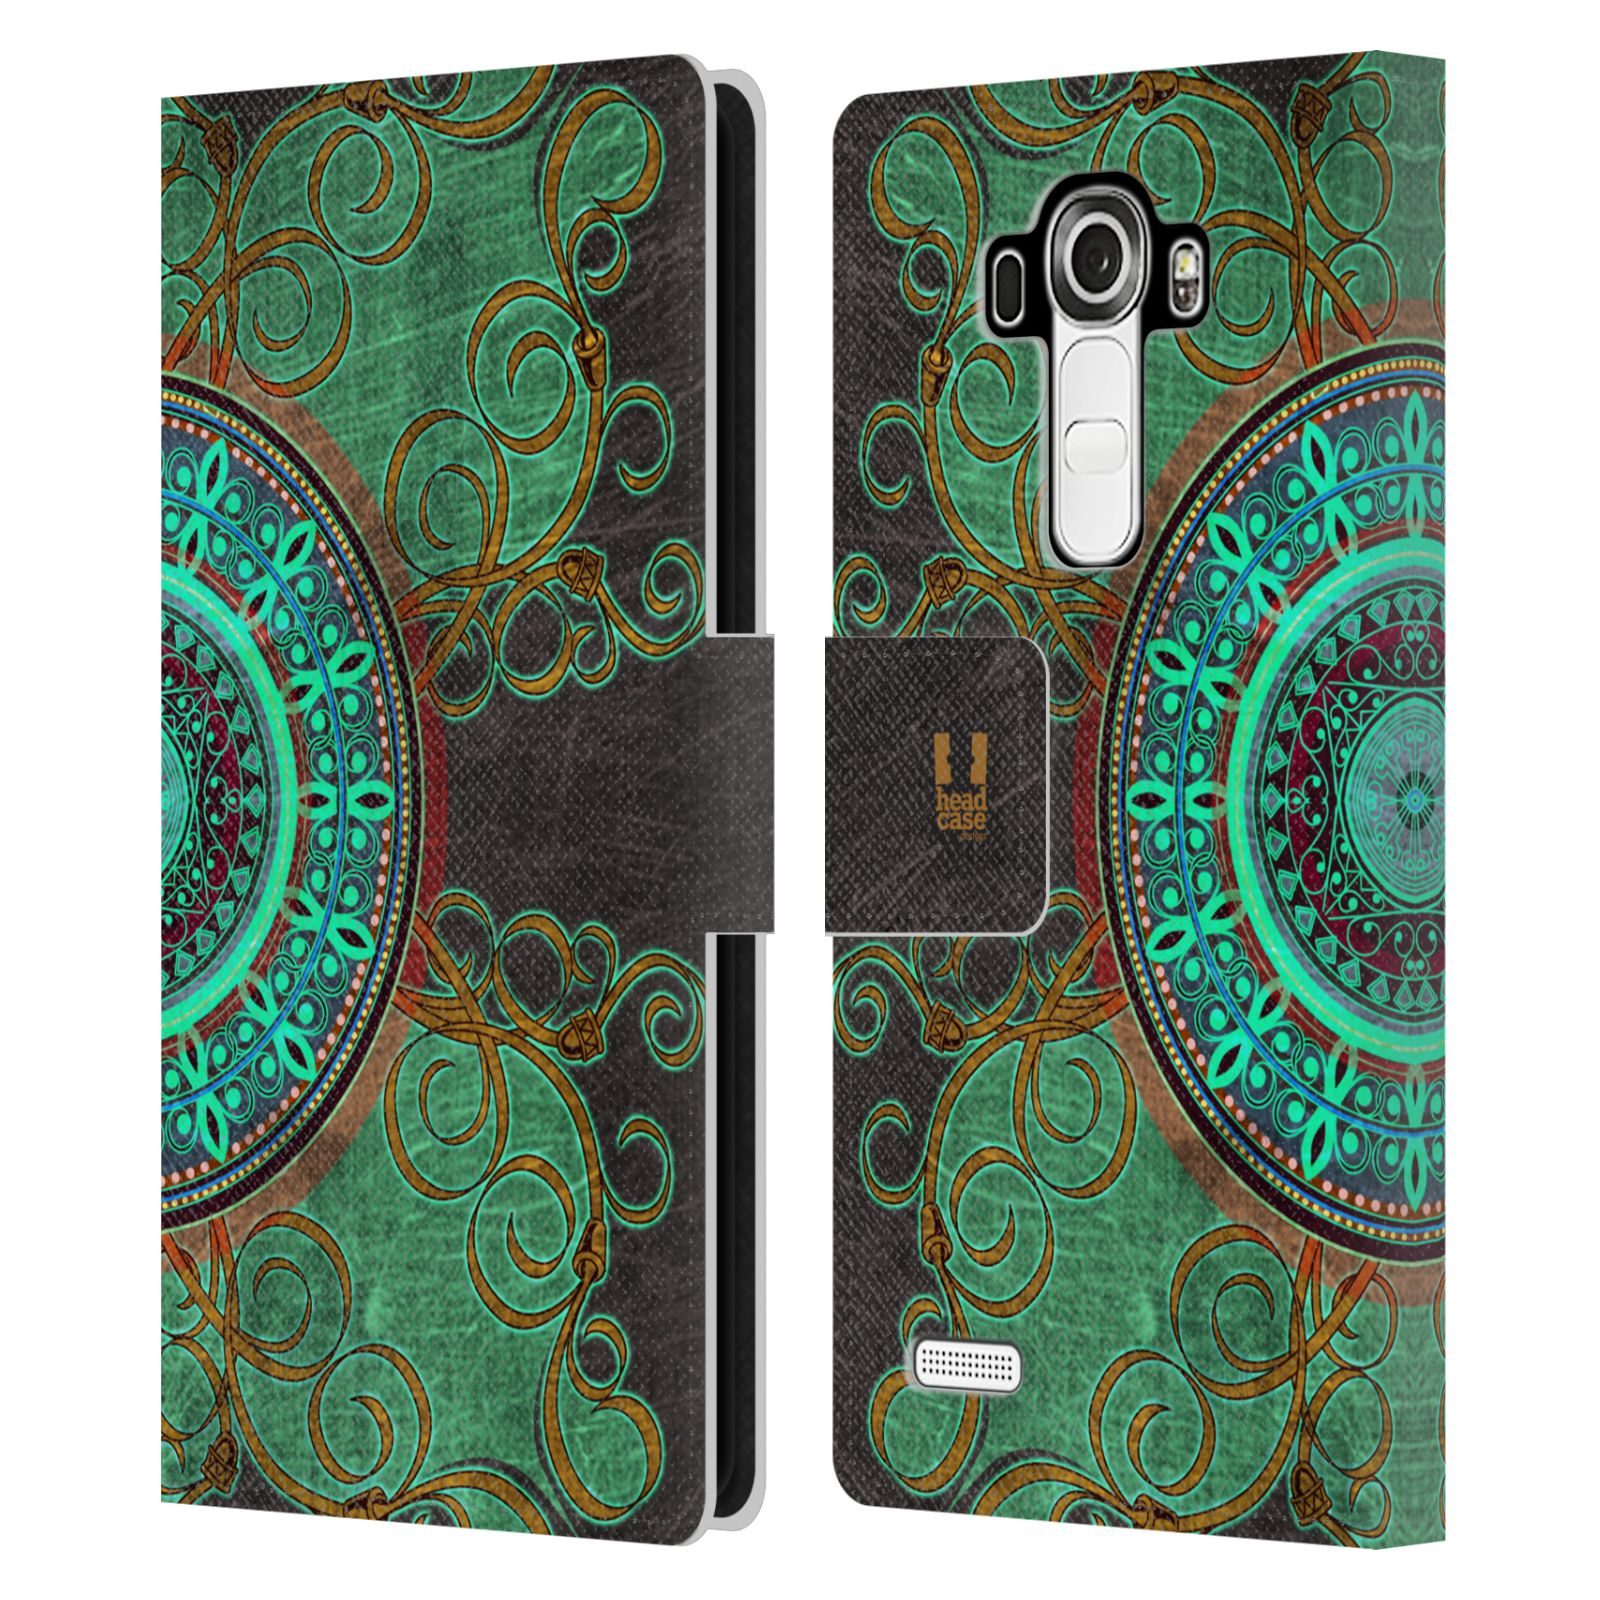 Leather Book Cover Pattern : Head case designs arabesque pattern leather book wallet